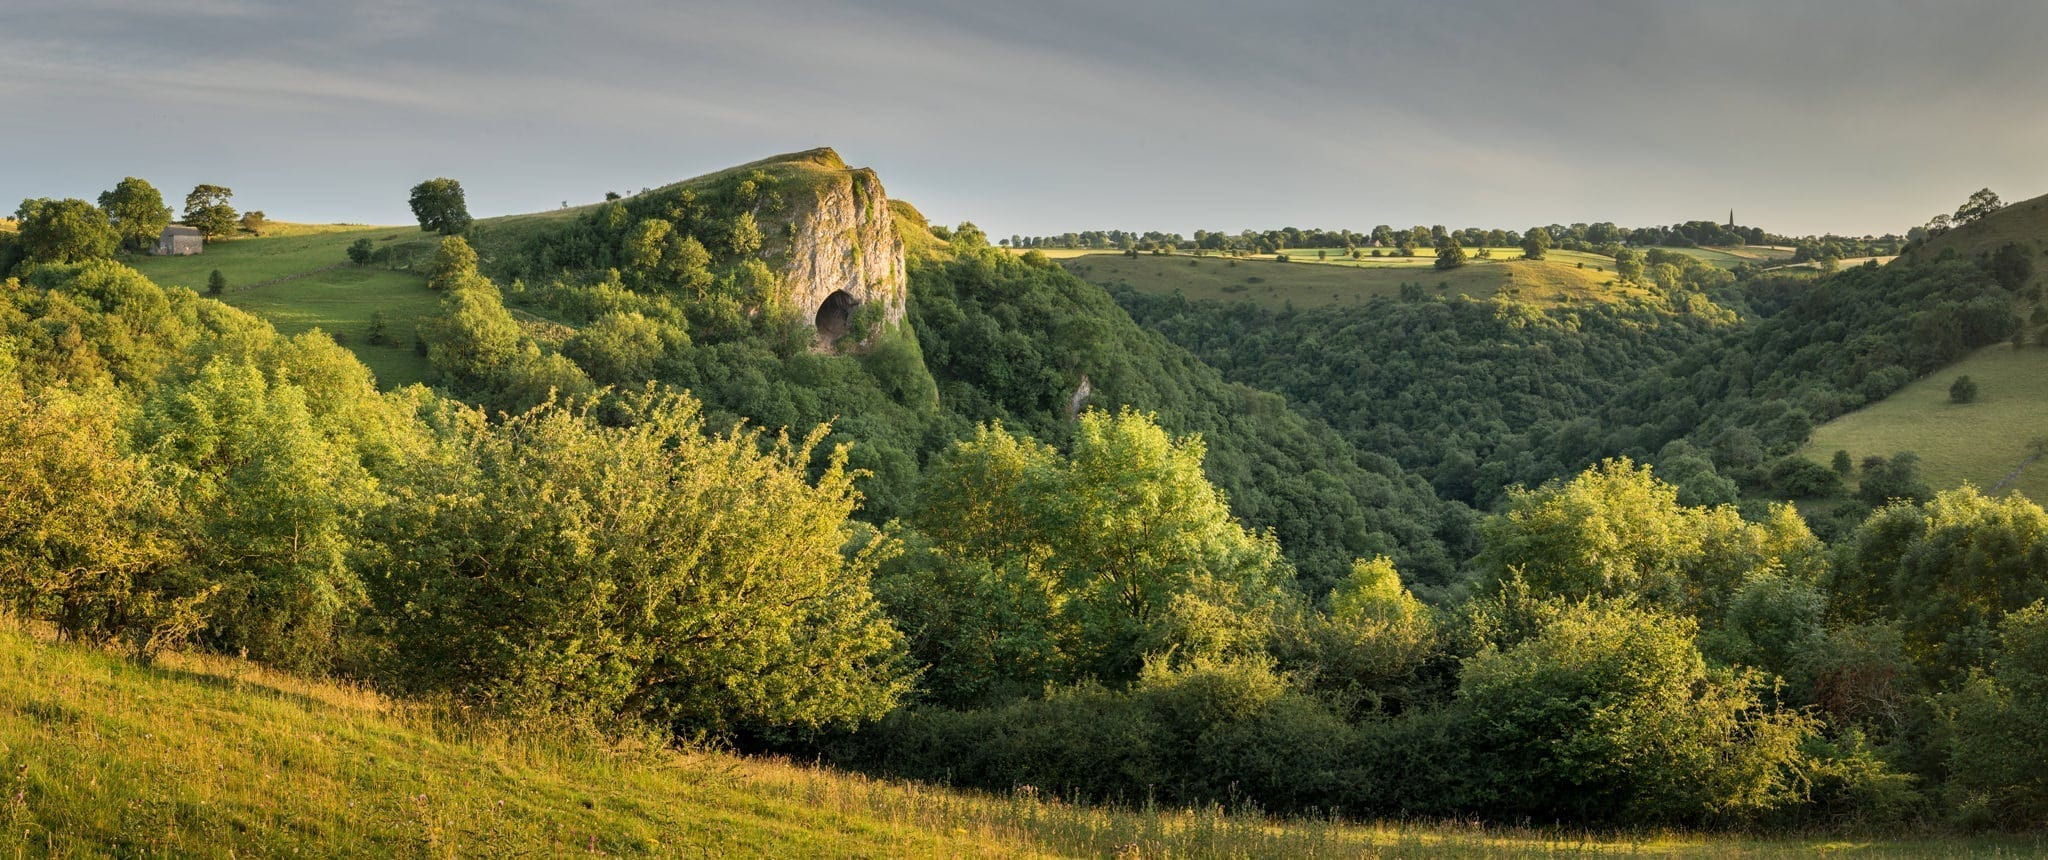 Thors Cave Sunset Panoramic - South Peak District Limestone Photography Workshop